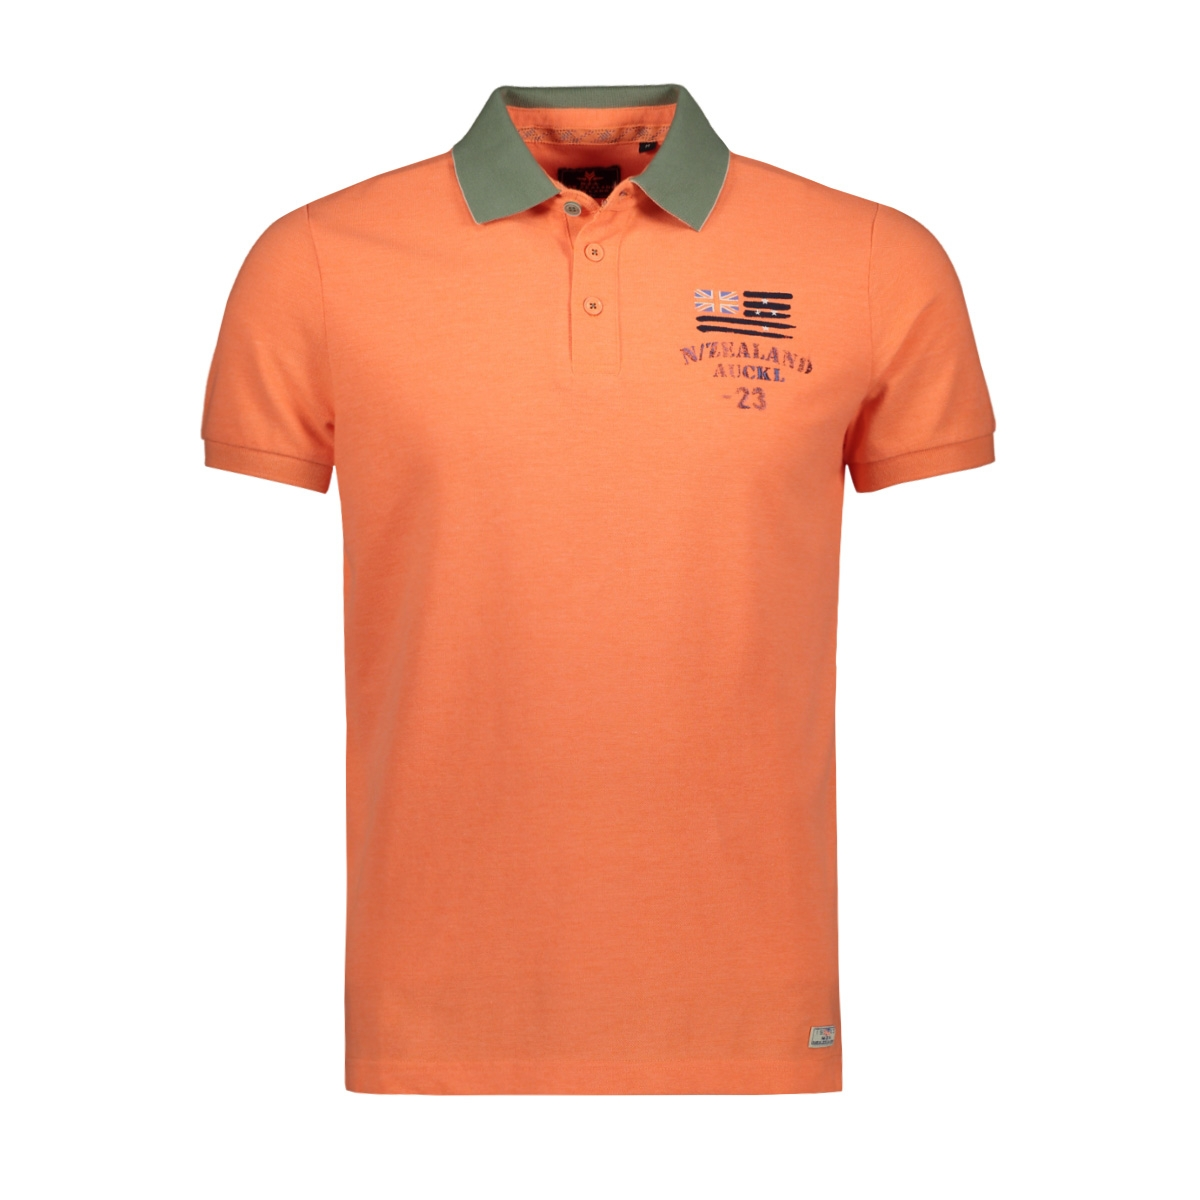 saxton 20cn125 nza polo 641 peach orange